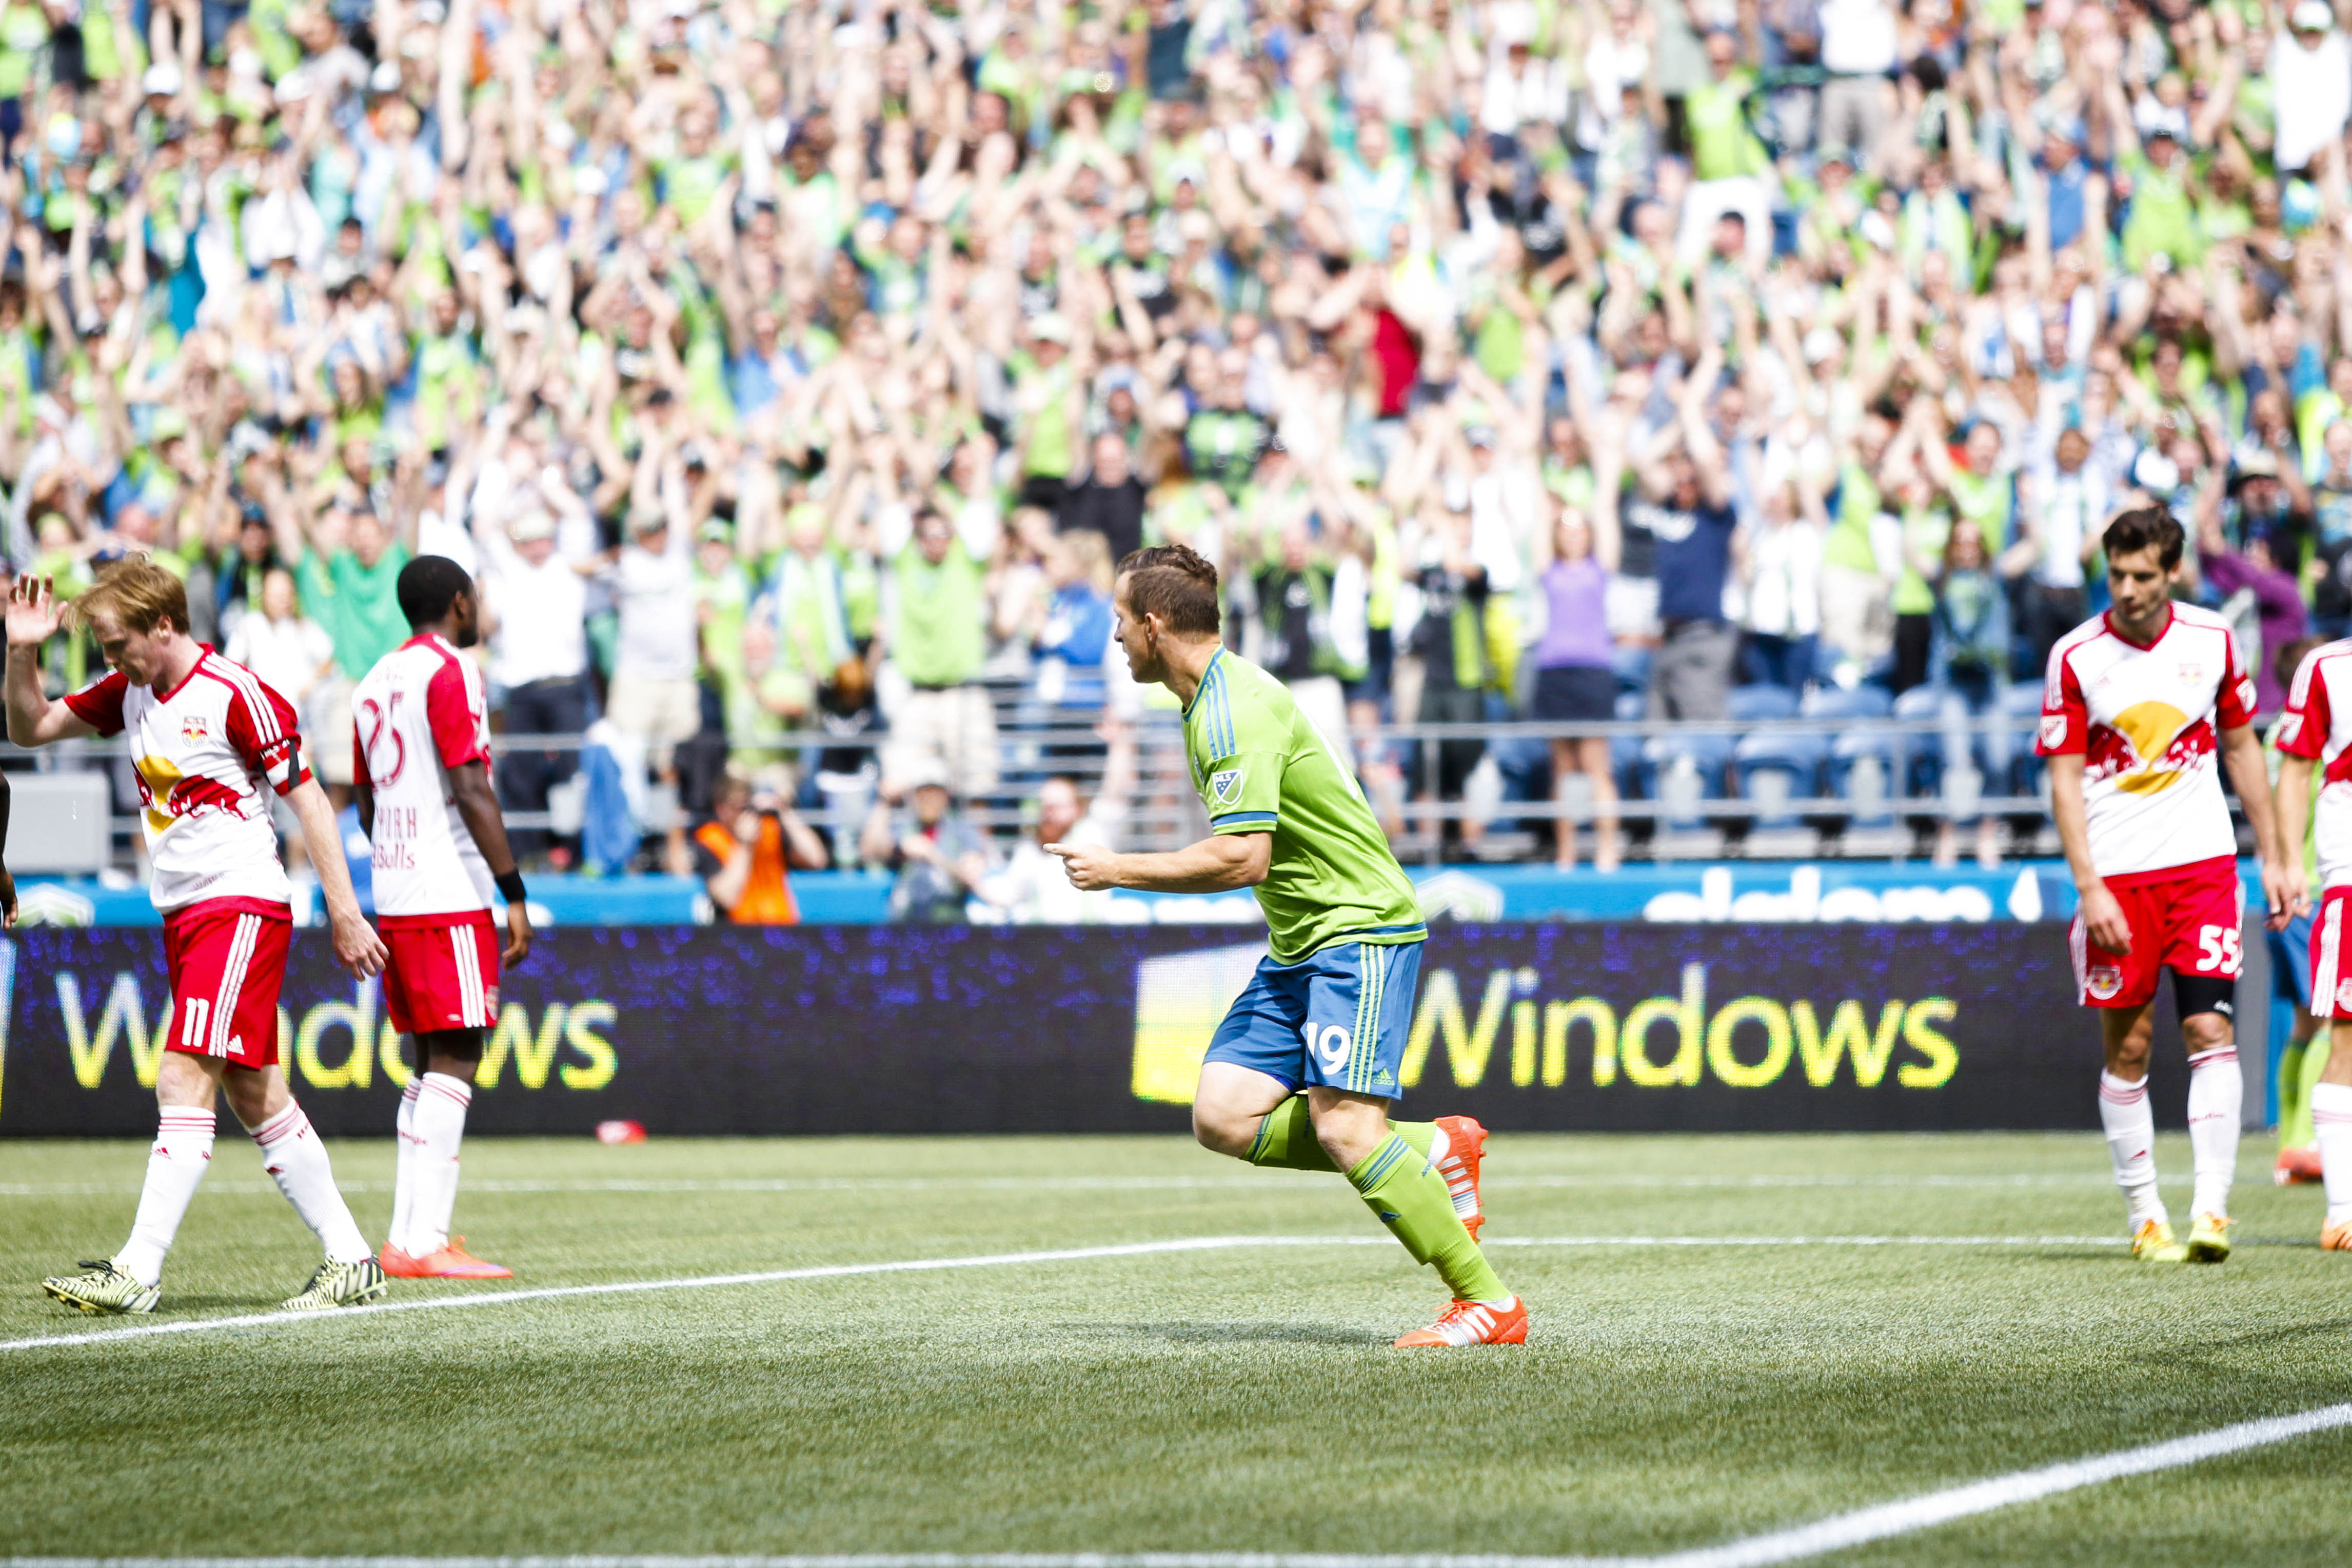 Barrett celebrates his 10th goal for the Sounders in MLS